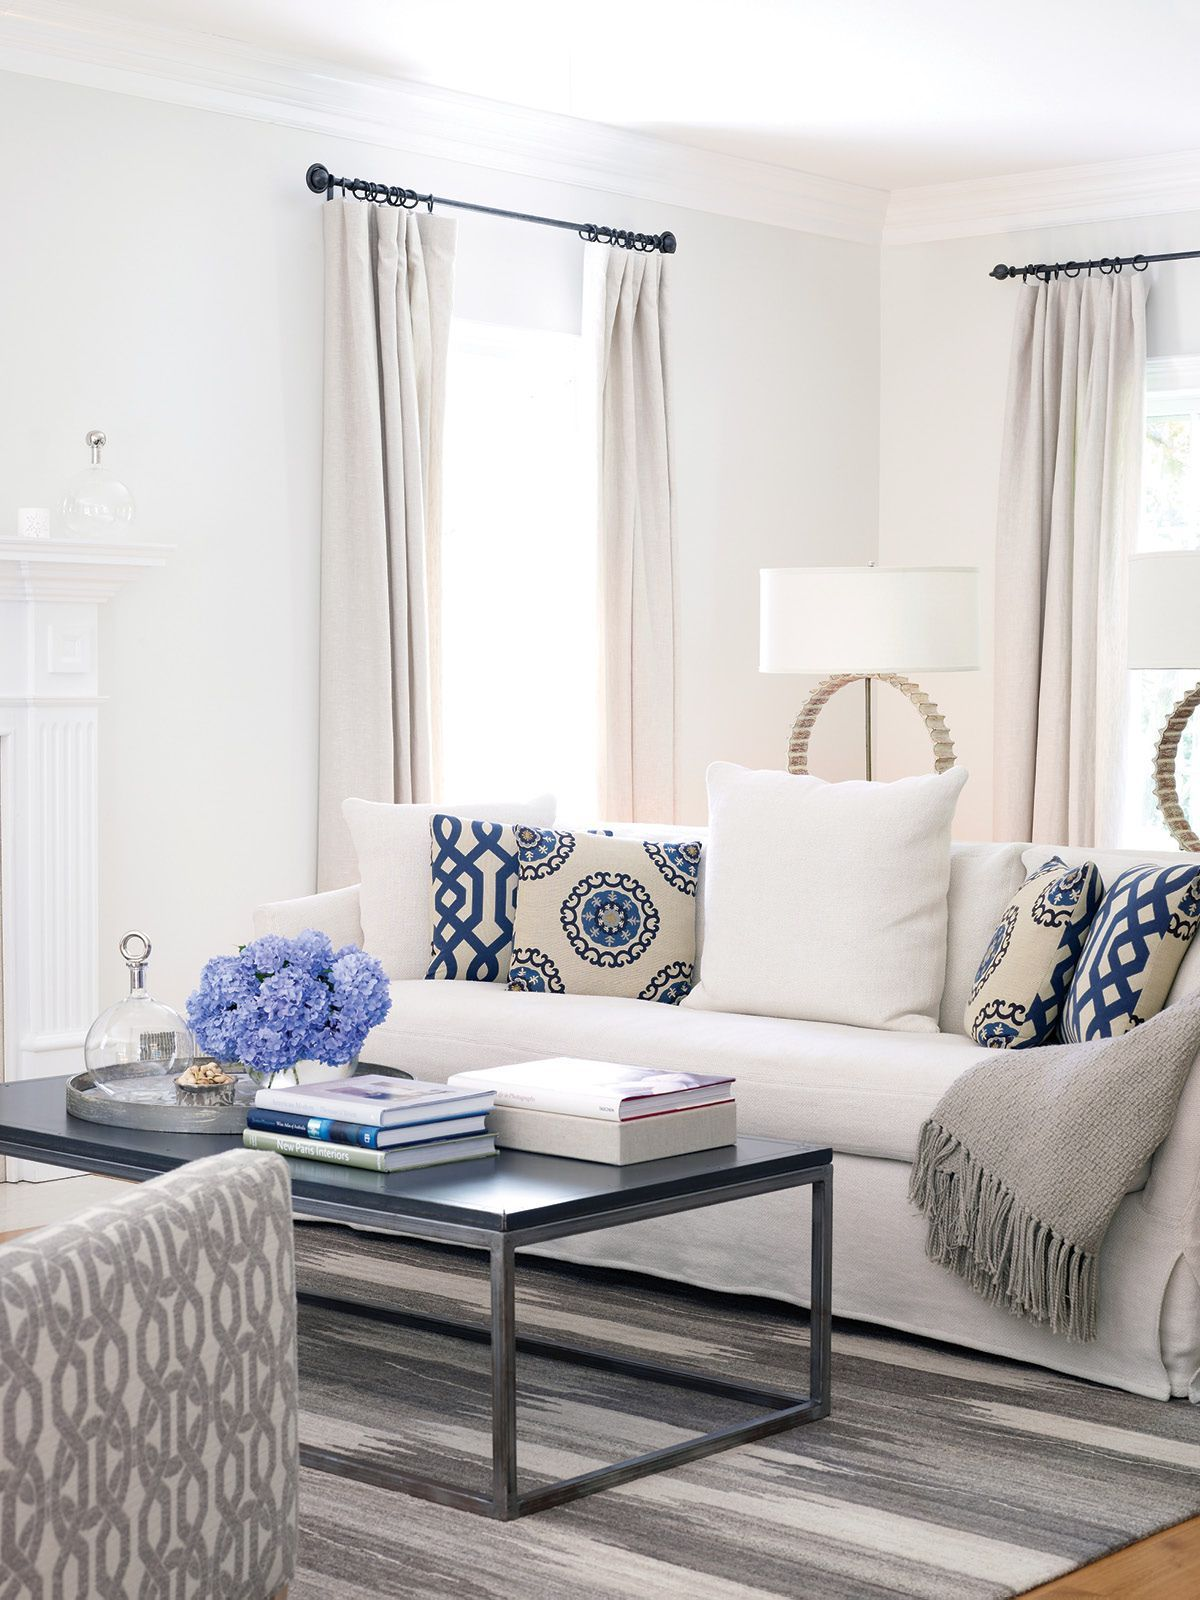 Unique Blue and White Living Room Design Ideas | White throws ...